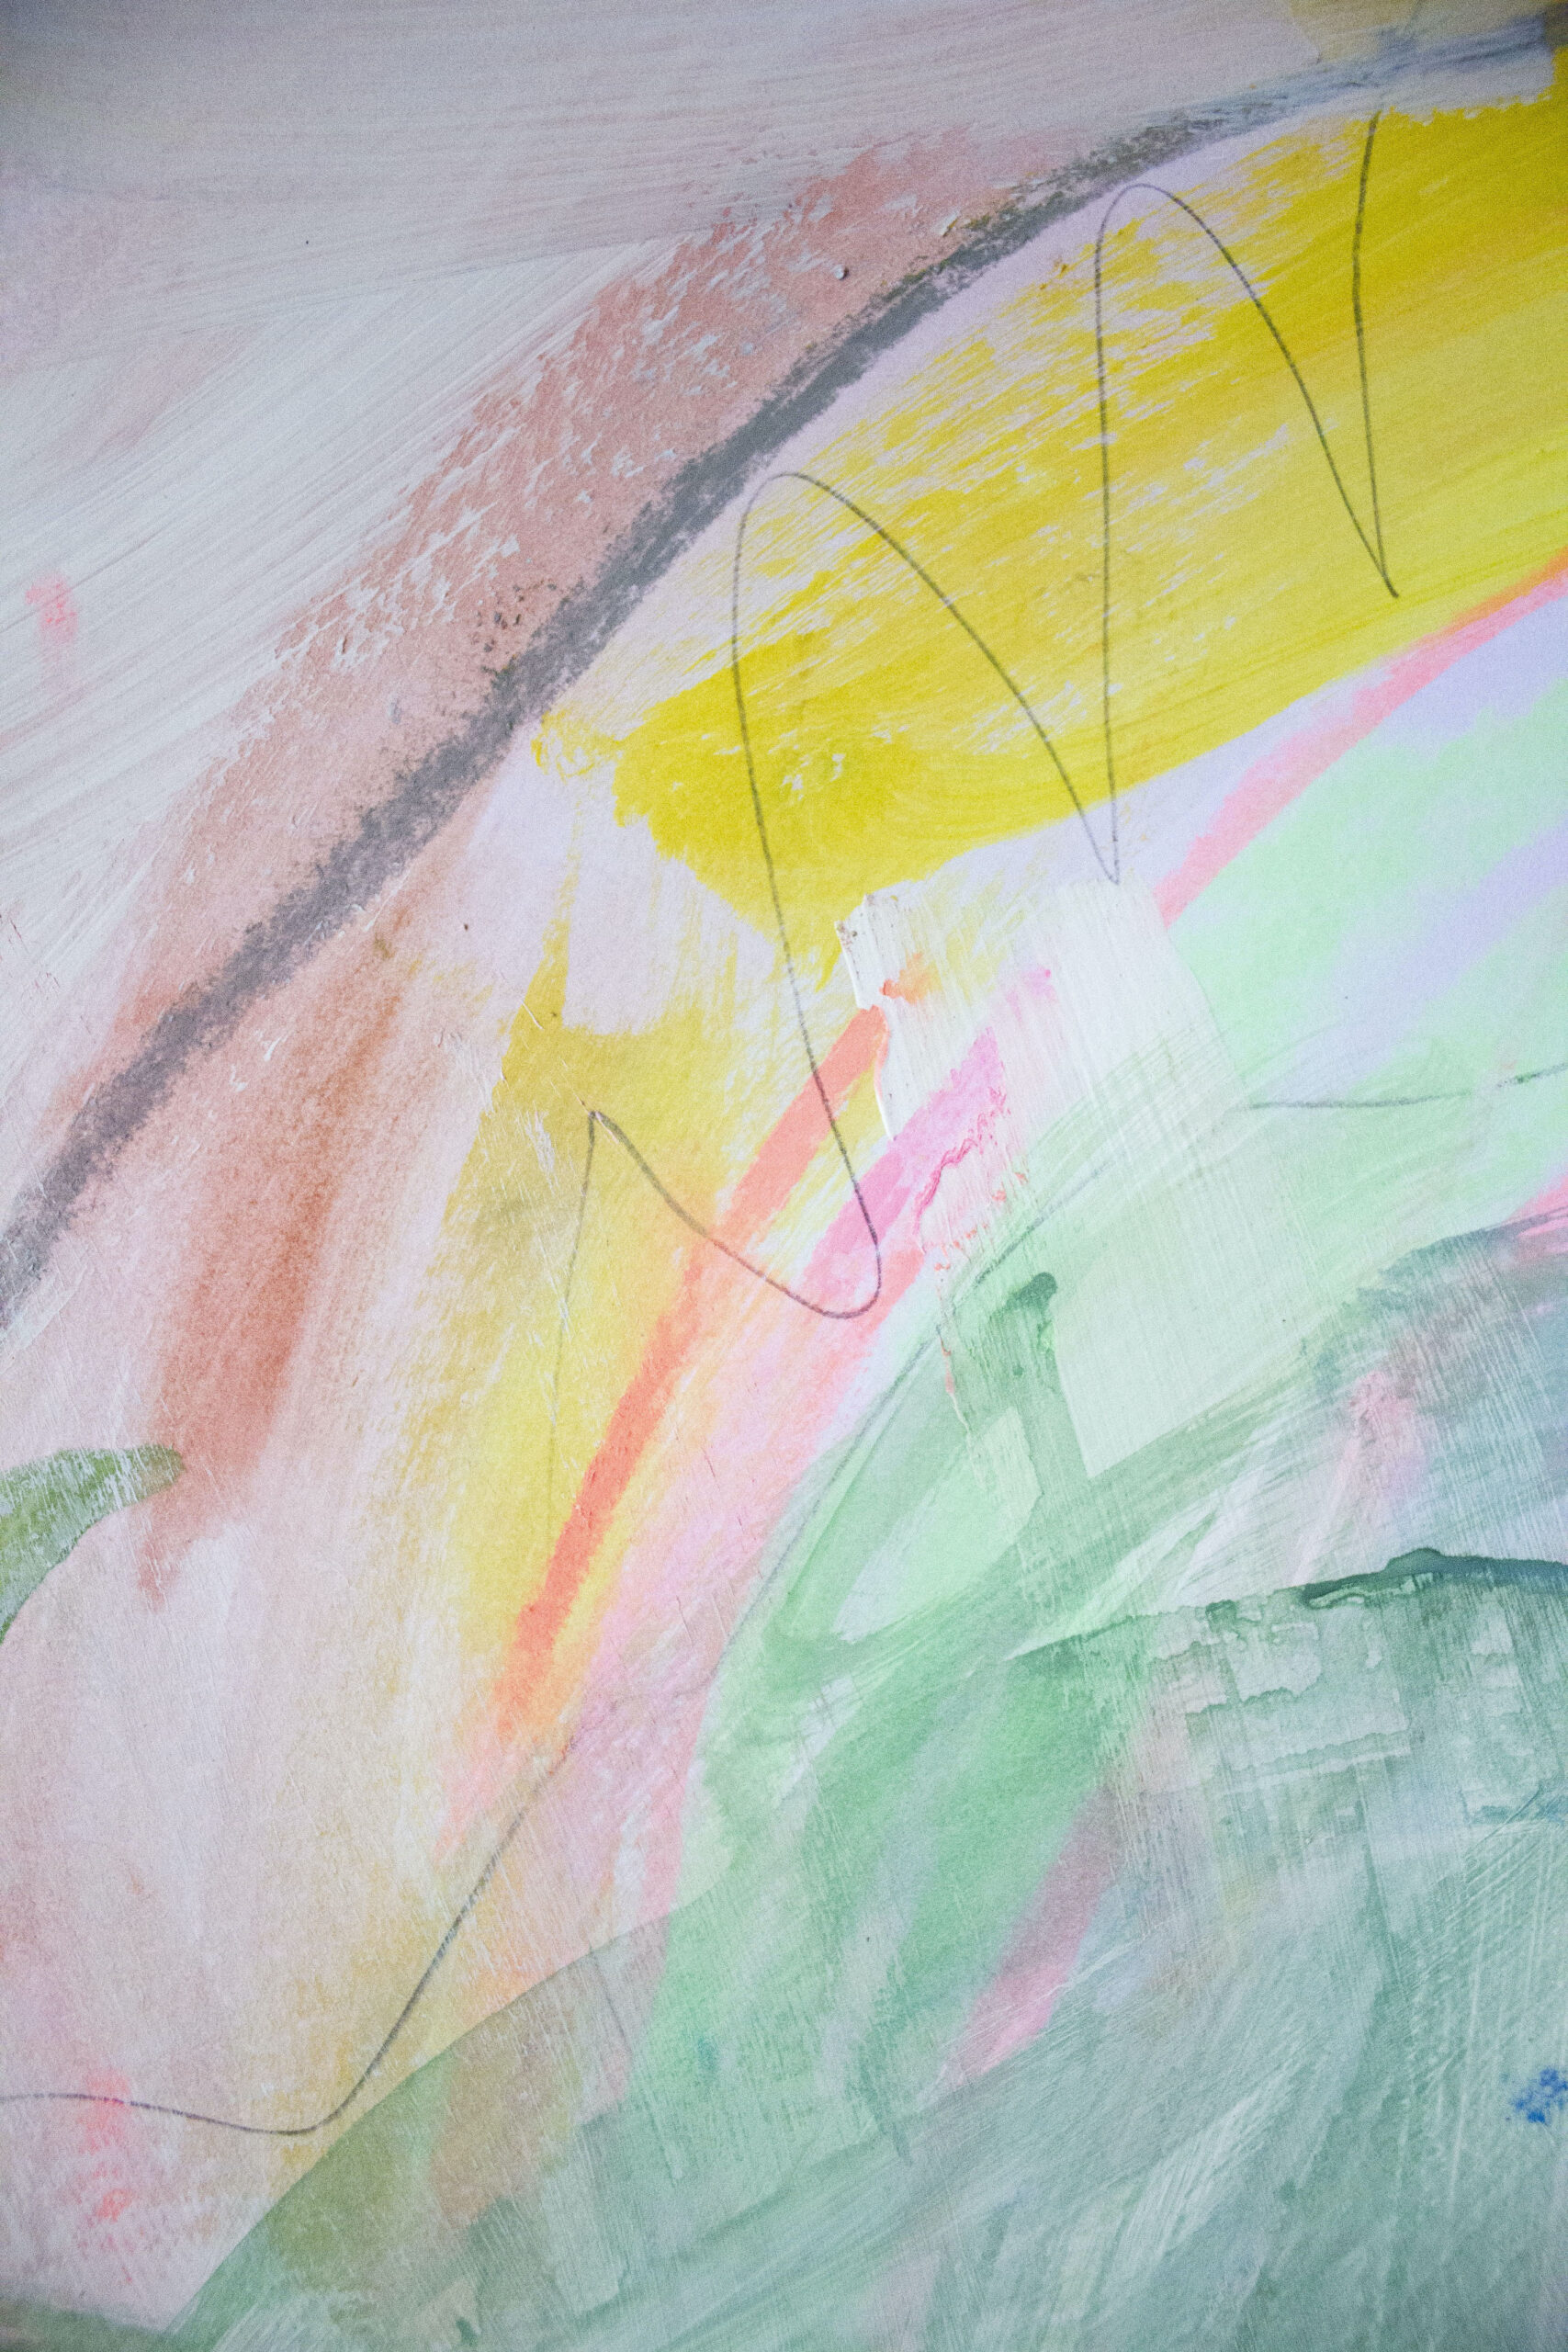 Róisín Bohan, Fluctuating Feelings 1 (Detail 1), Acrylic, Pastel and Pencil on Paper, 2019